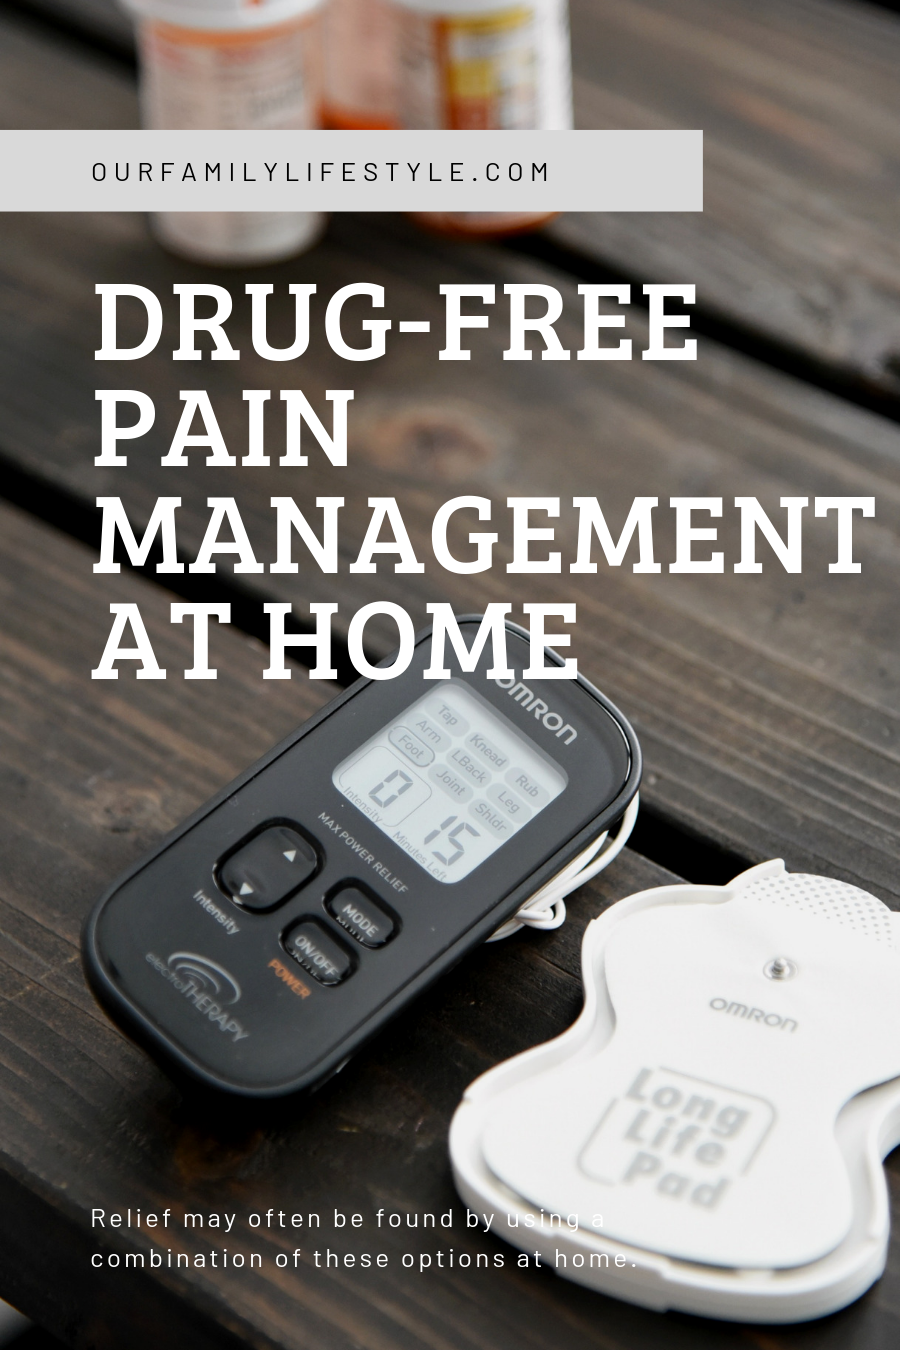 4 Steps To Drug-free Pain Management at Home